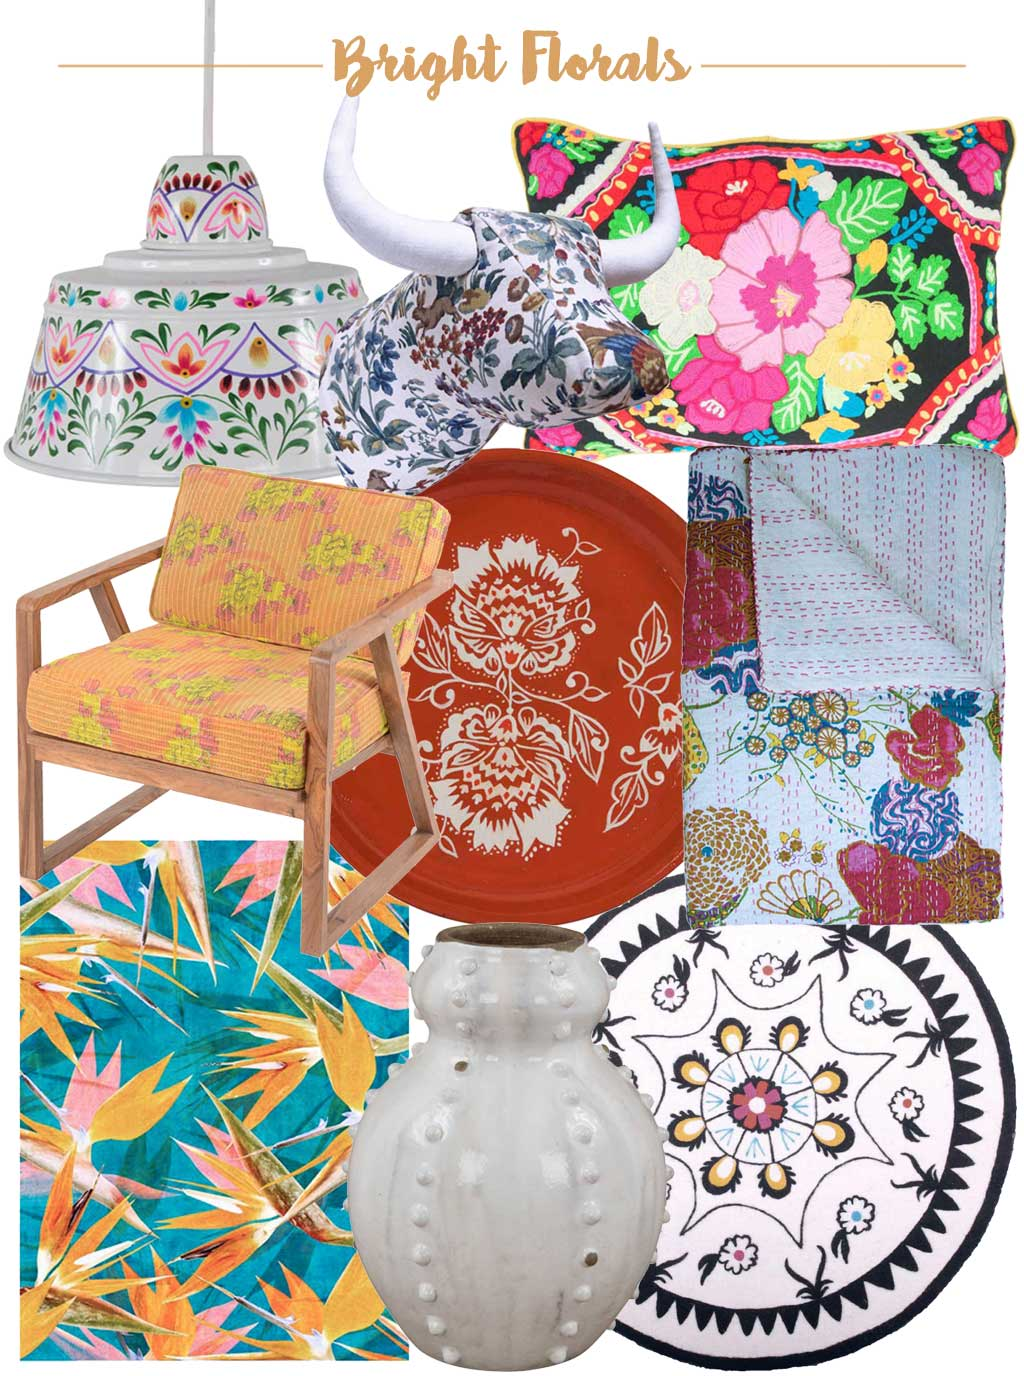 Bright Florals - Product Inspiration - Blooming Gorgeous - 3 Ways to Decorate with Florals - Hutsly